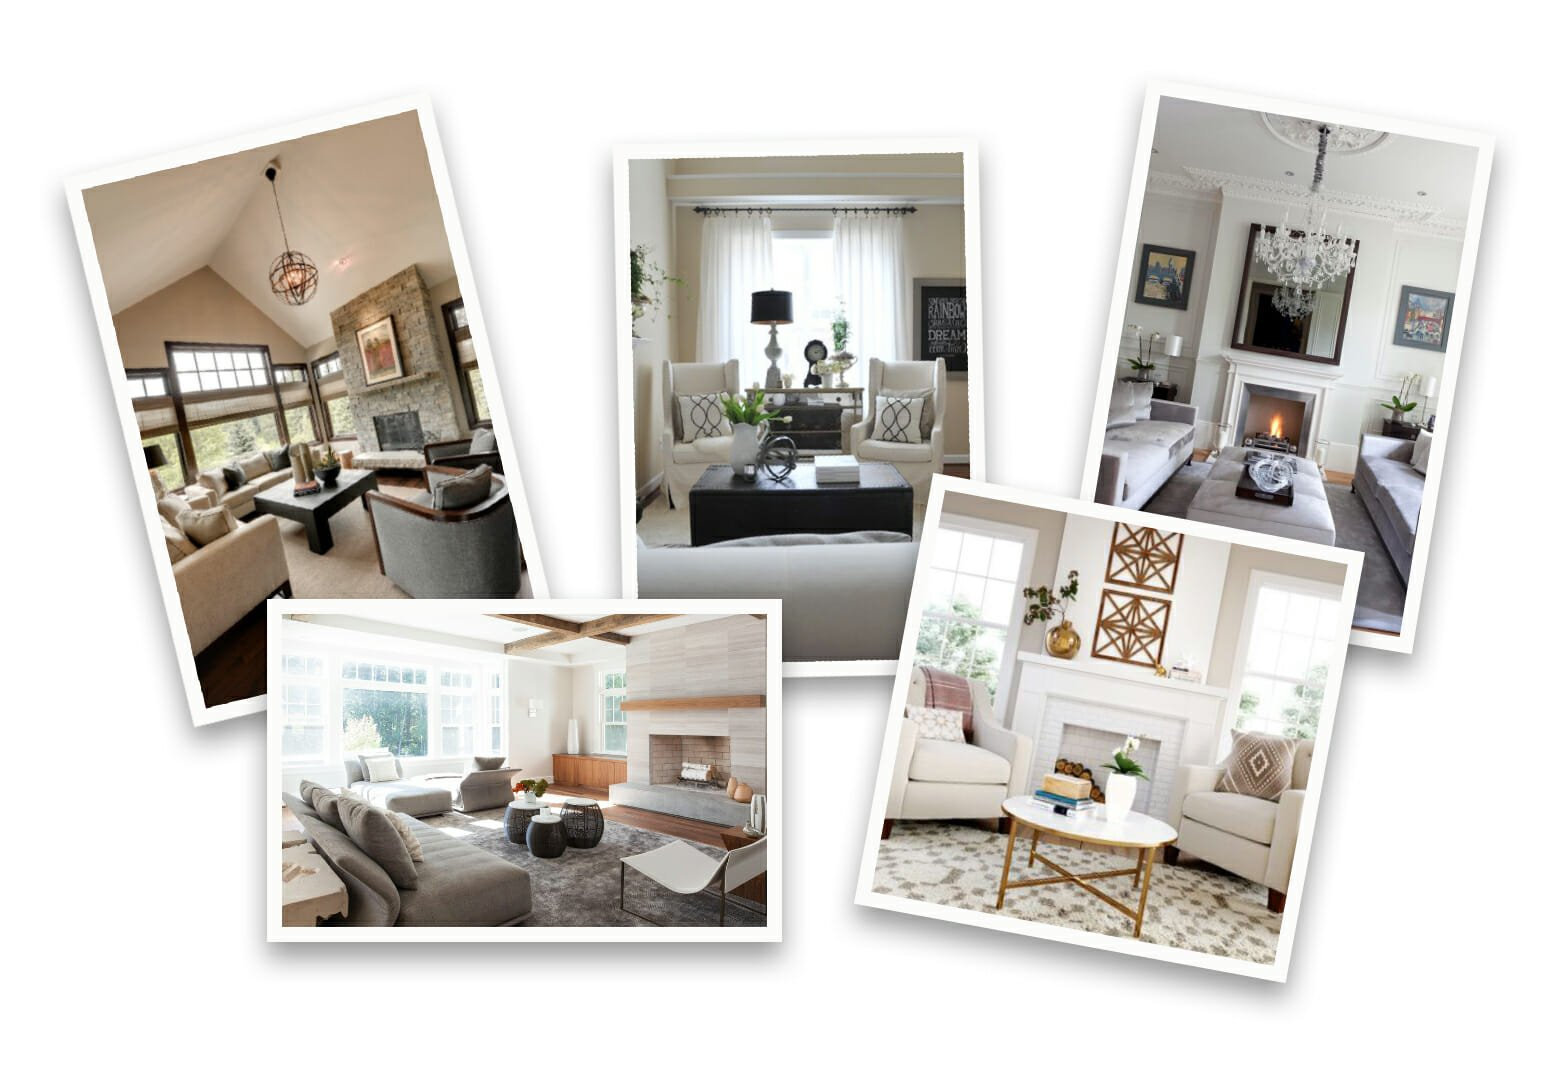 transitional online living room design_inspiration